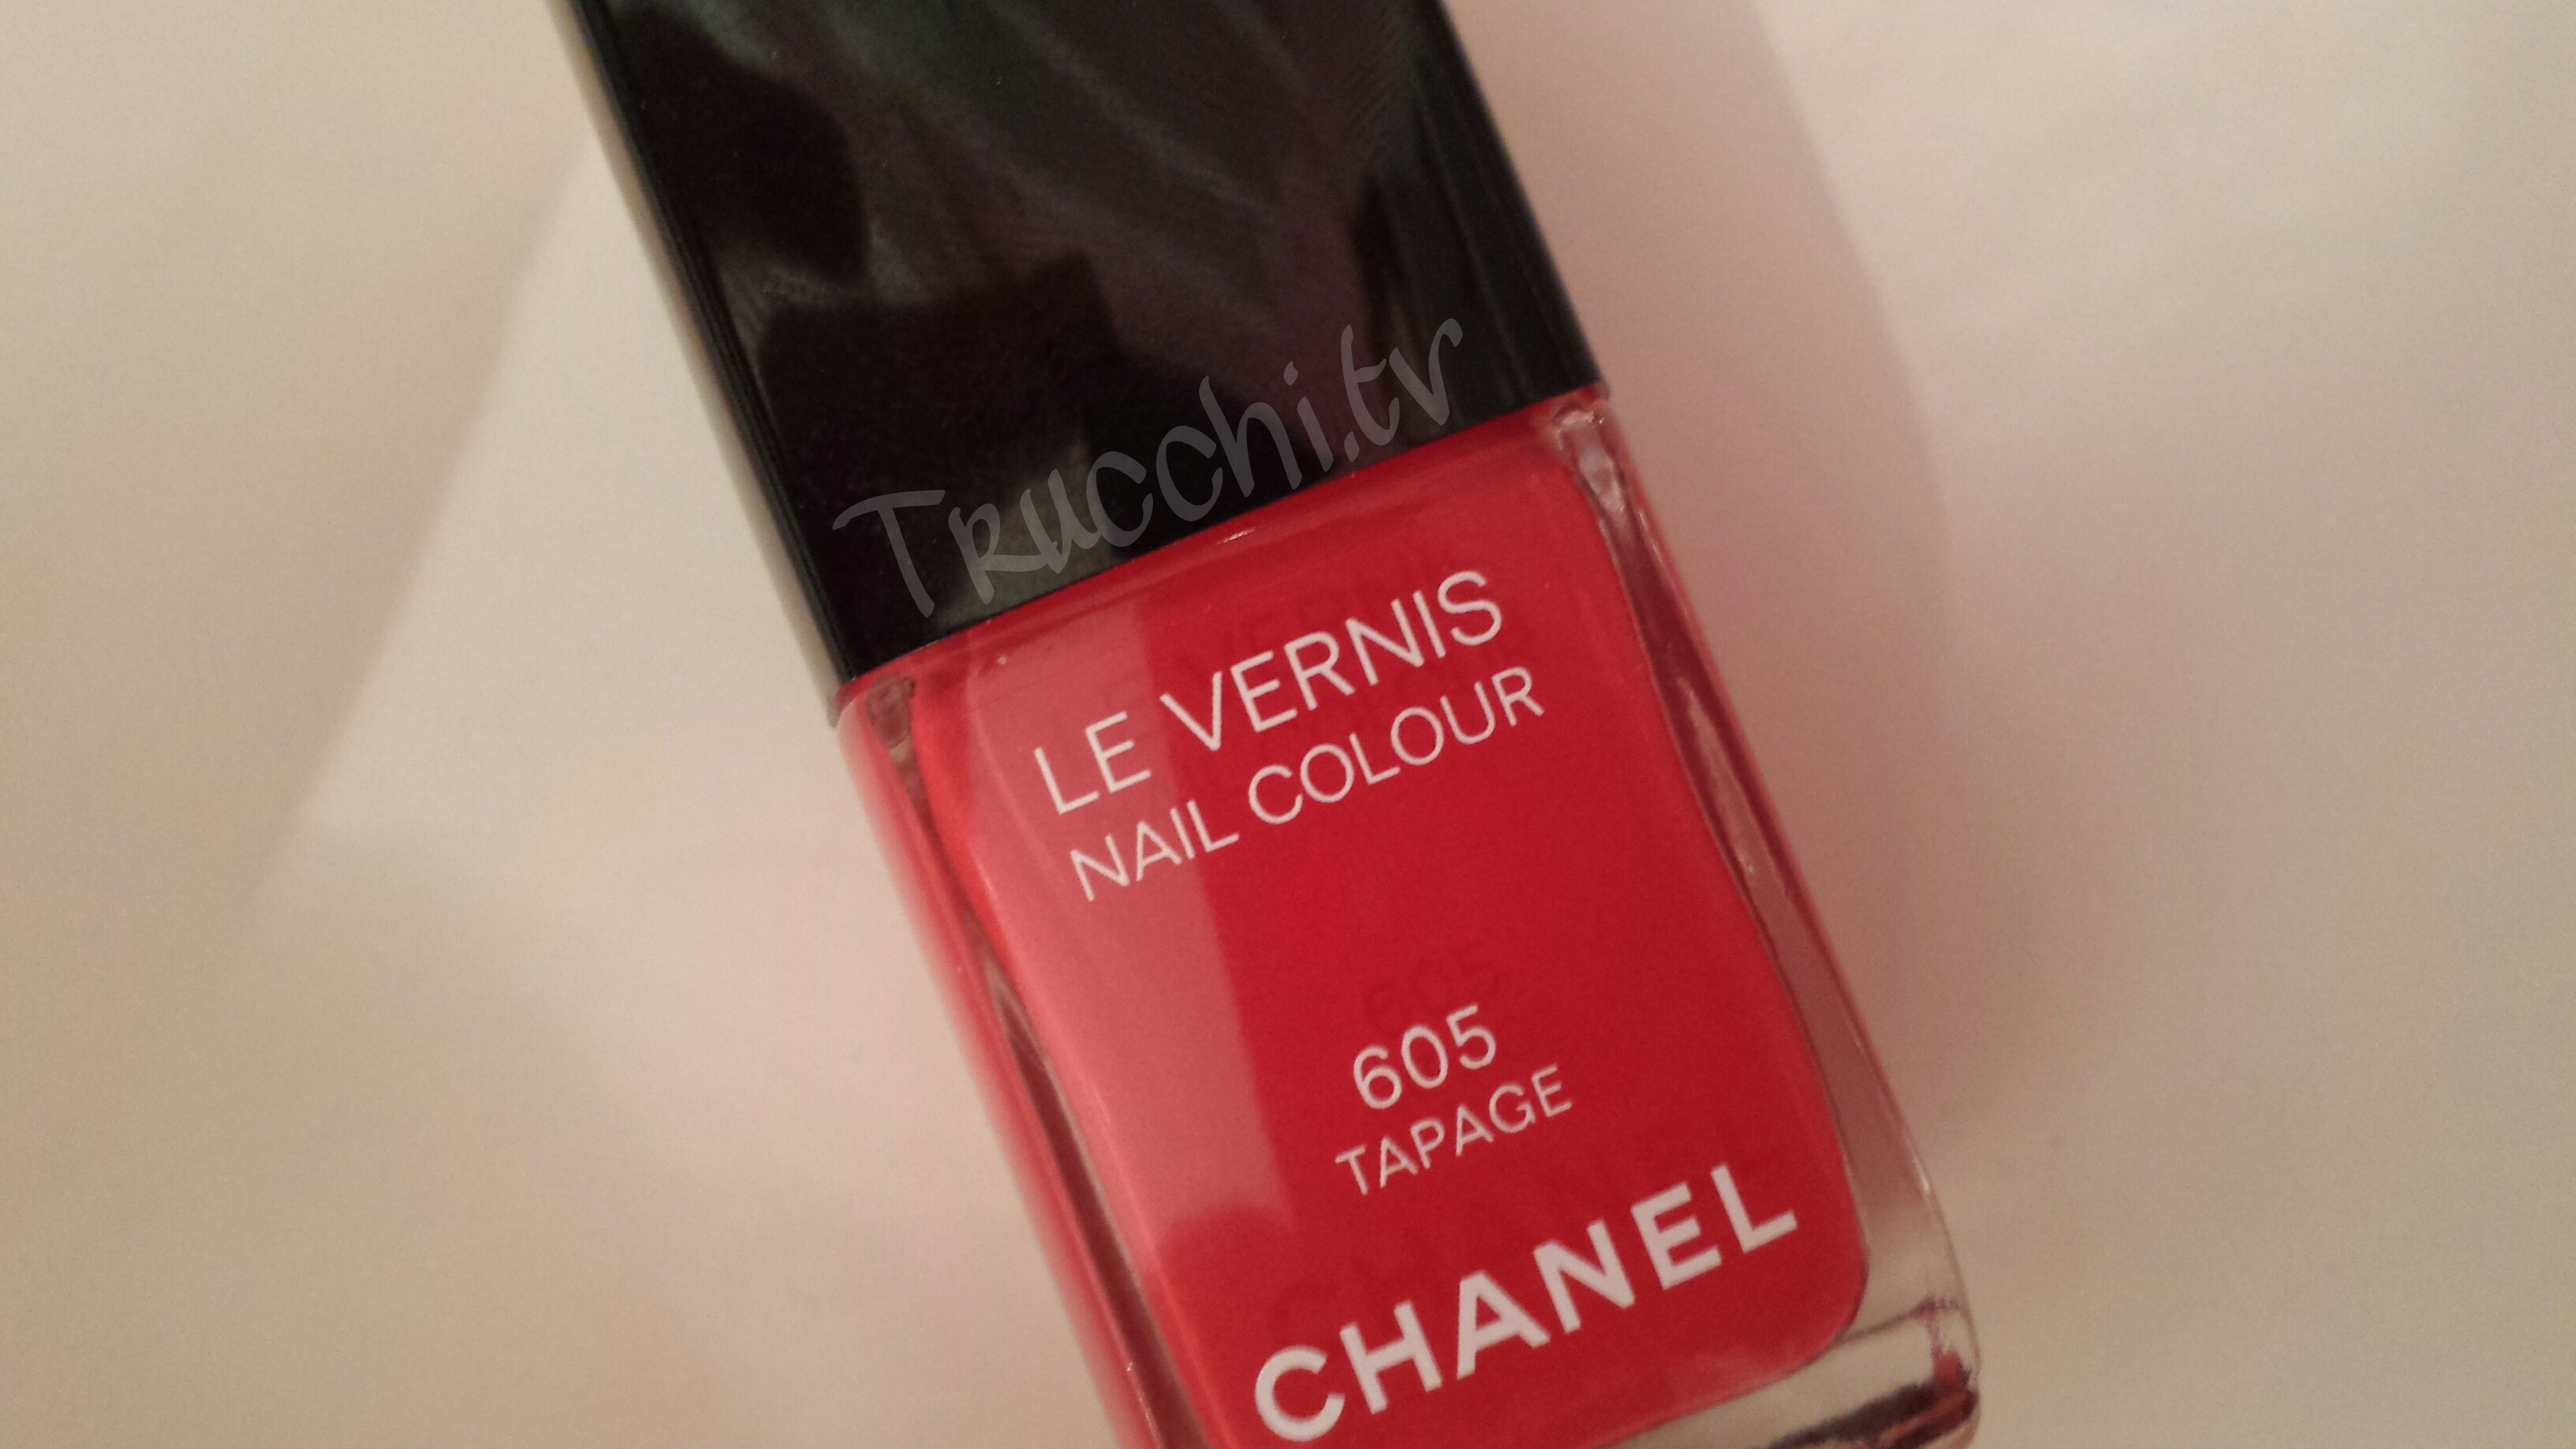 chanel le vernis nail colour tapage review